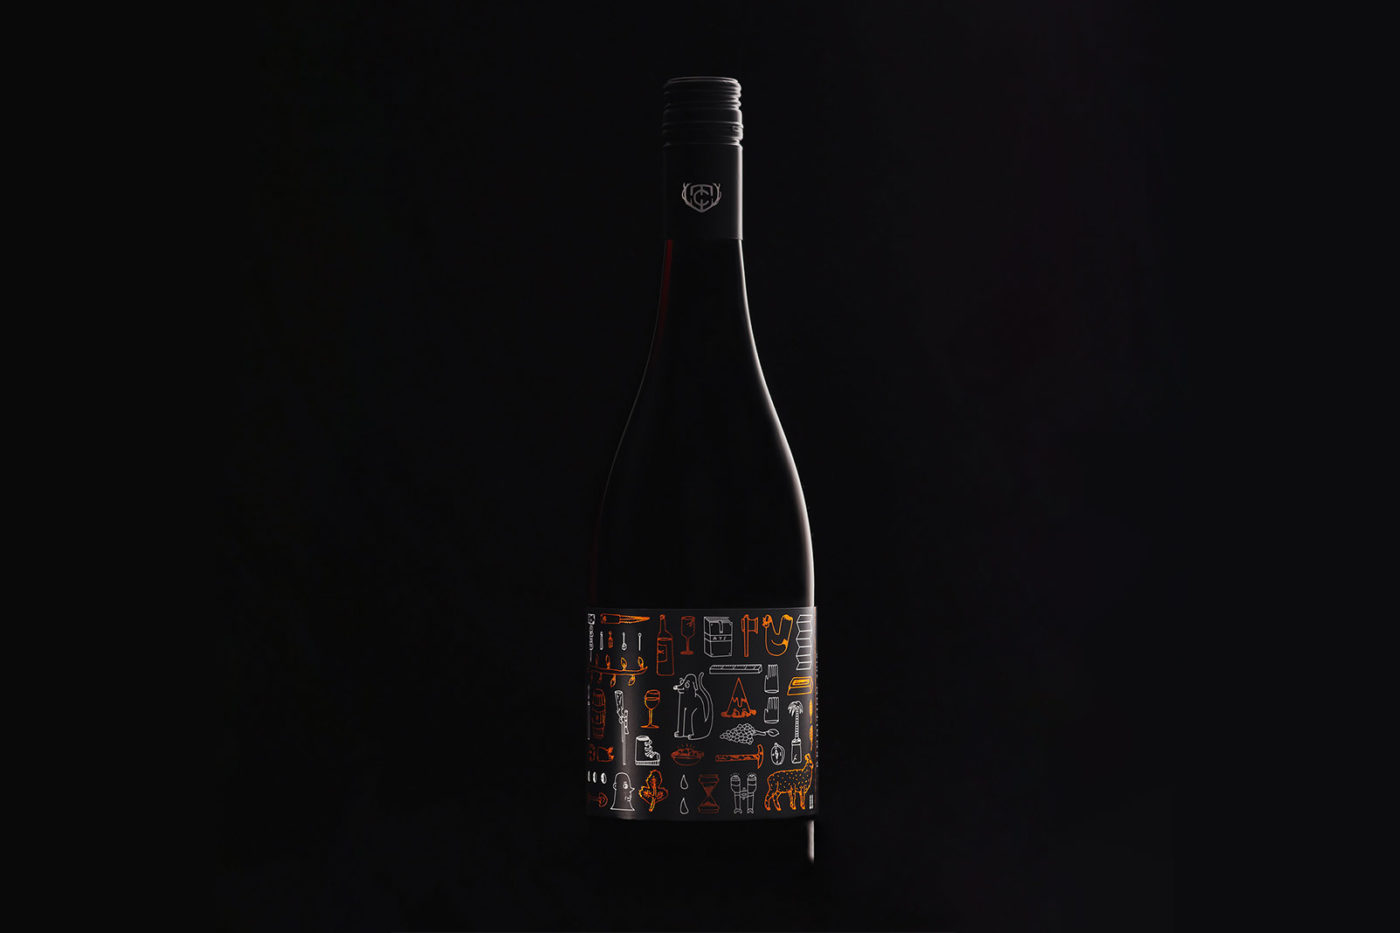 AJS for Matt Connell Wines. Limited edition 2016 Central Otago Pinot Noir